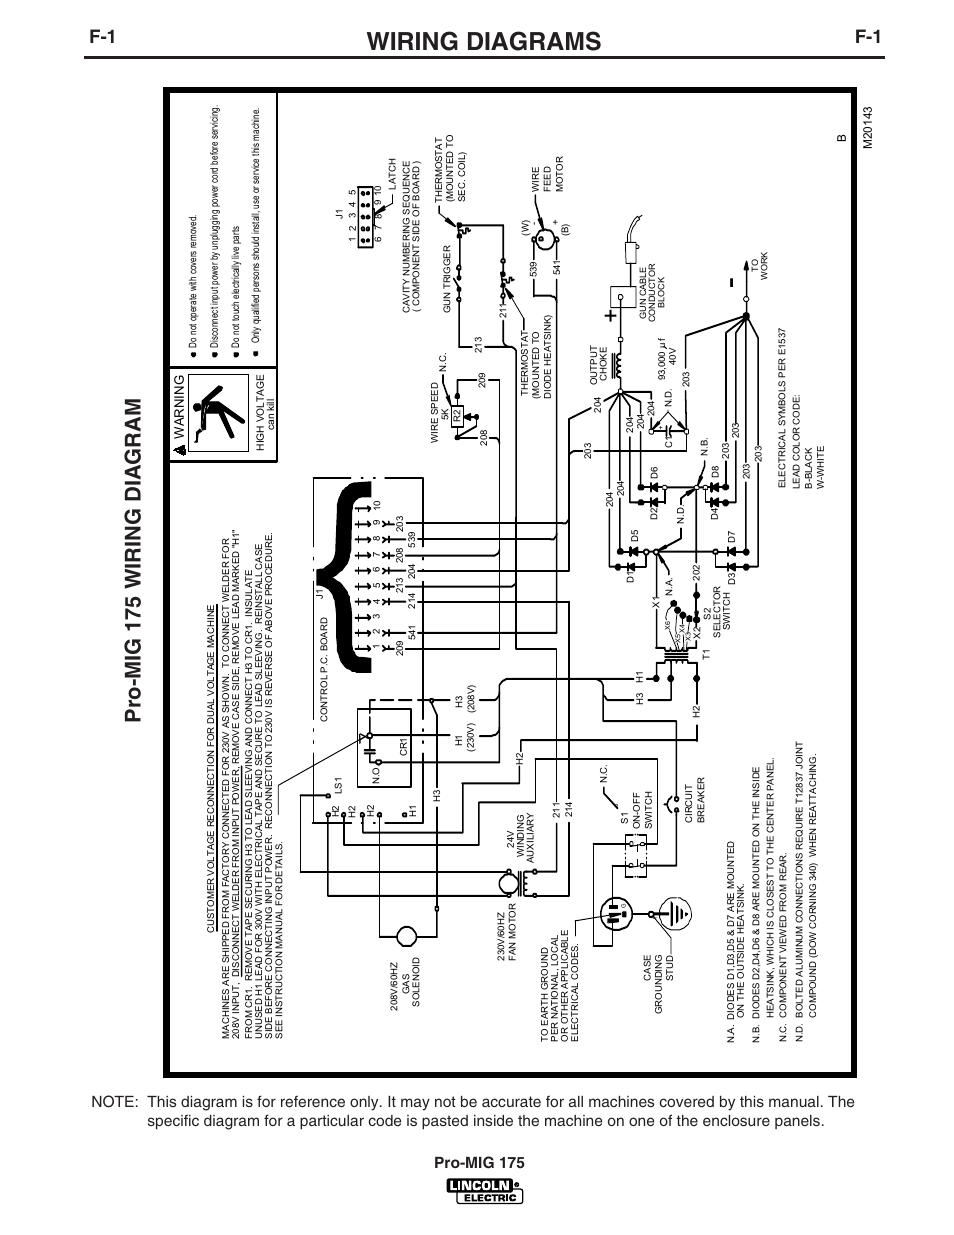 hight resolution of wire feed motor diagram wiring diagram structure mig welder diagram migmate wire feed problem